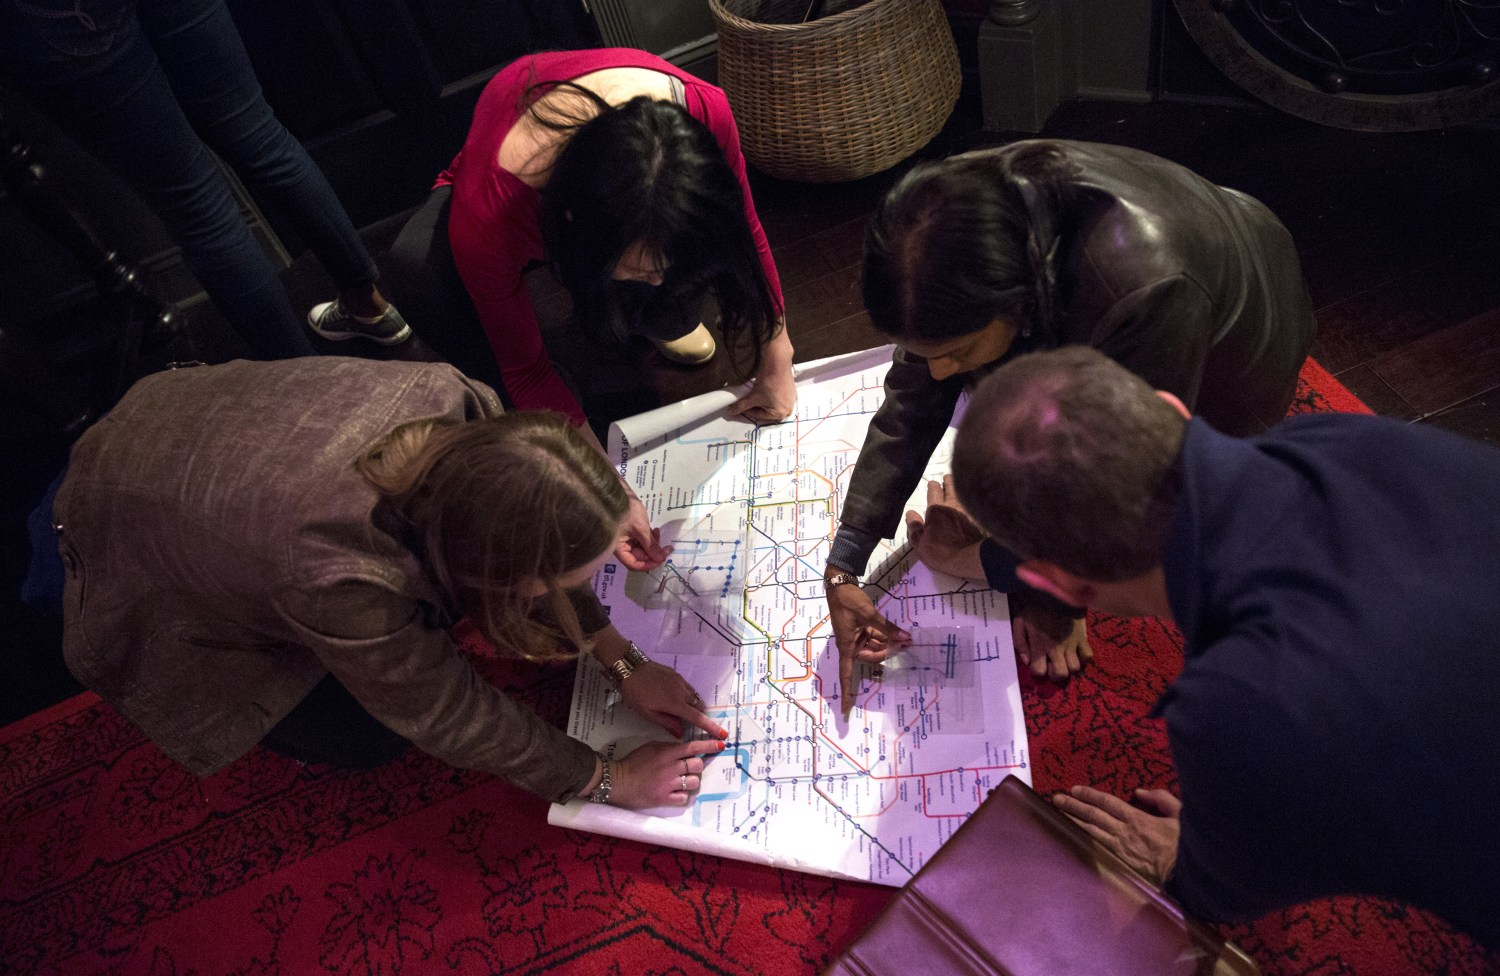 A team works together to gather hints to escape a room in Haifax, Nova Scotia.